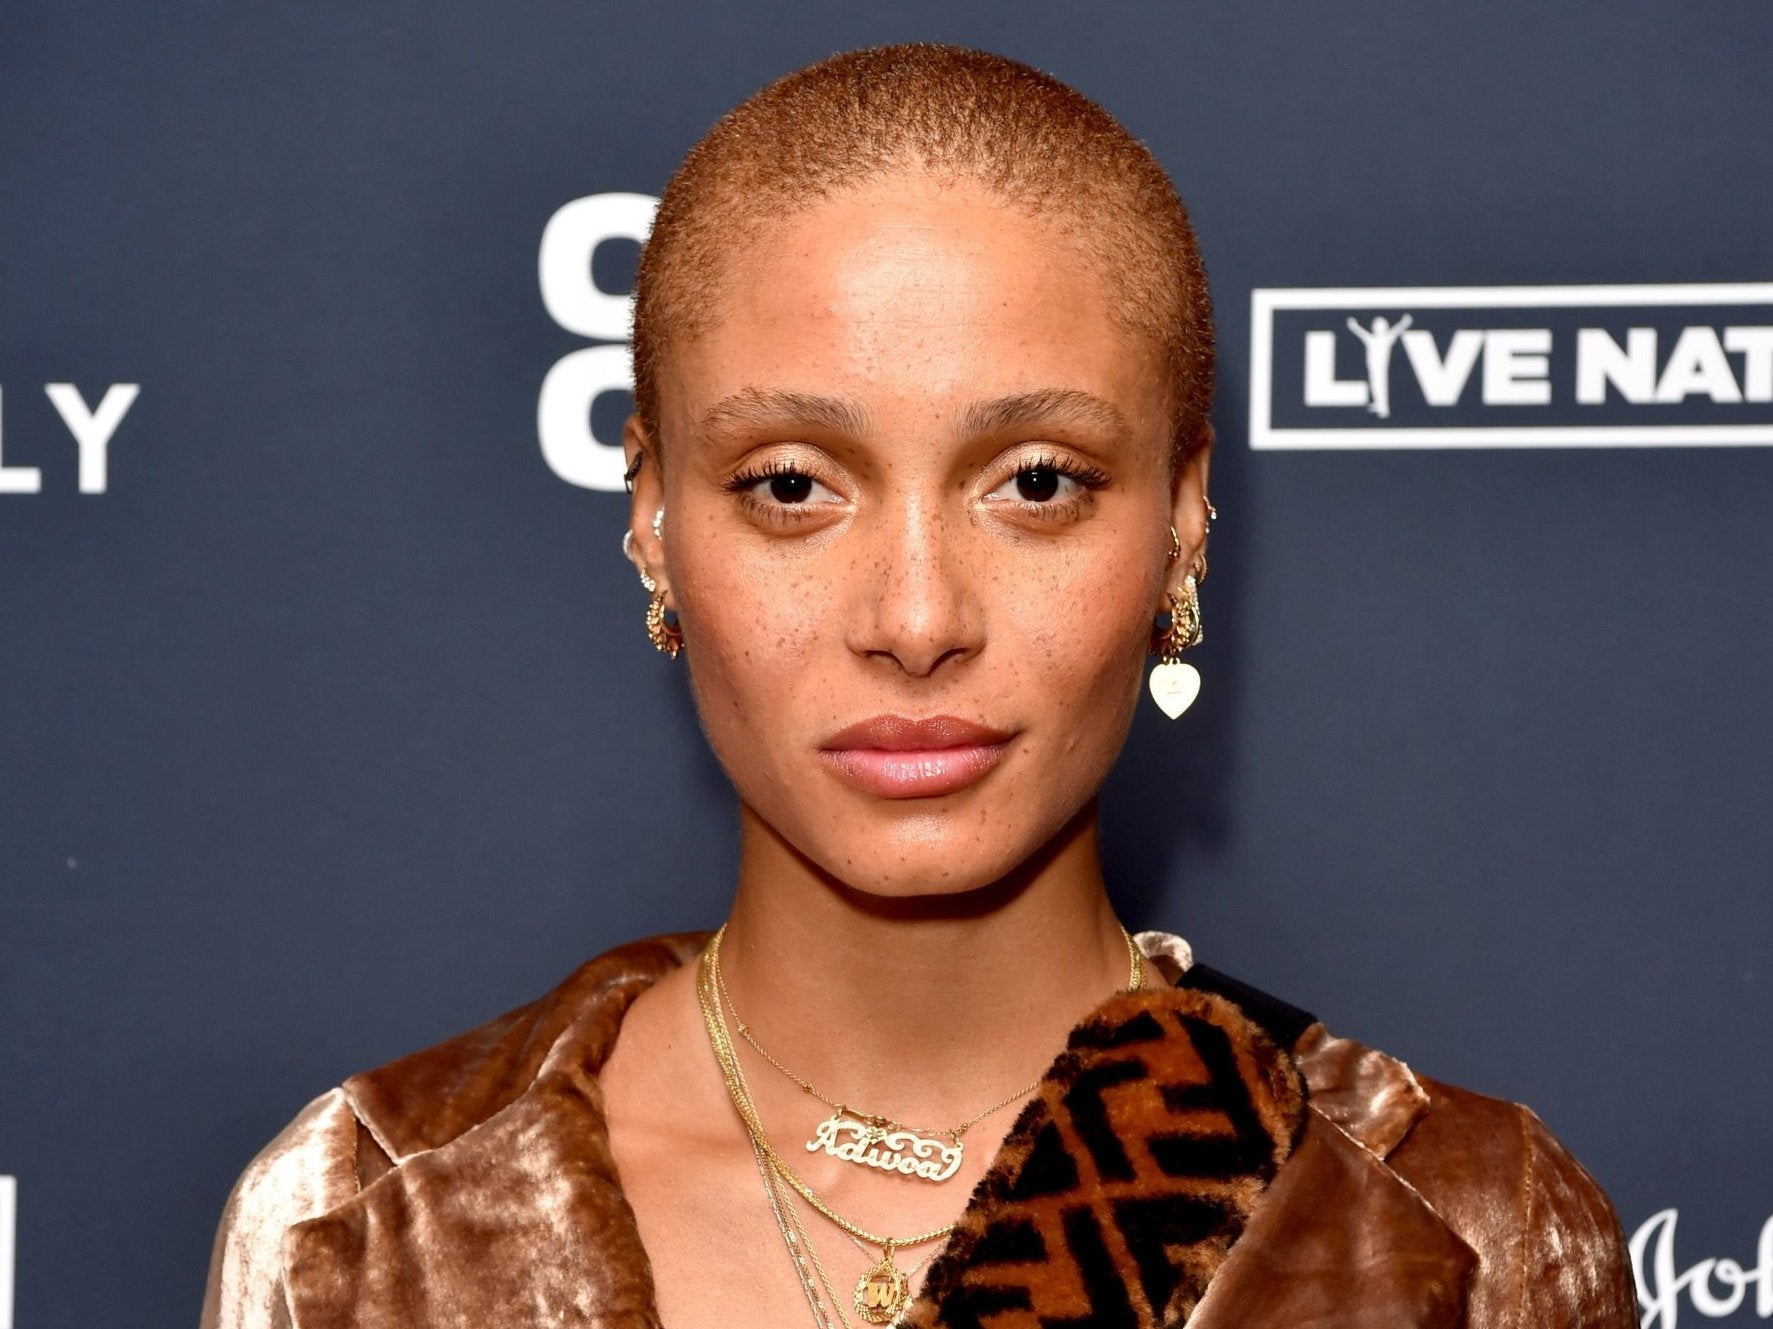 Adwoa Aboah says her role in fashion industry is to be 'f***ing authentic'